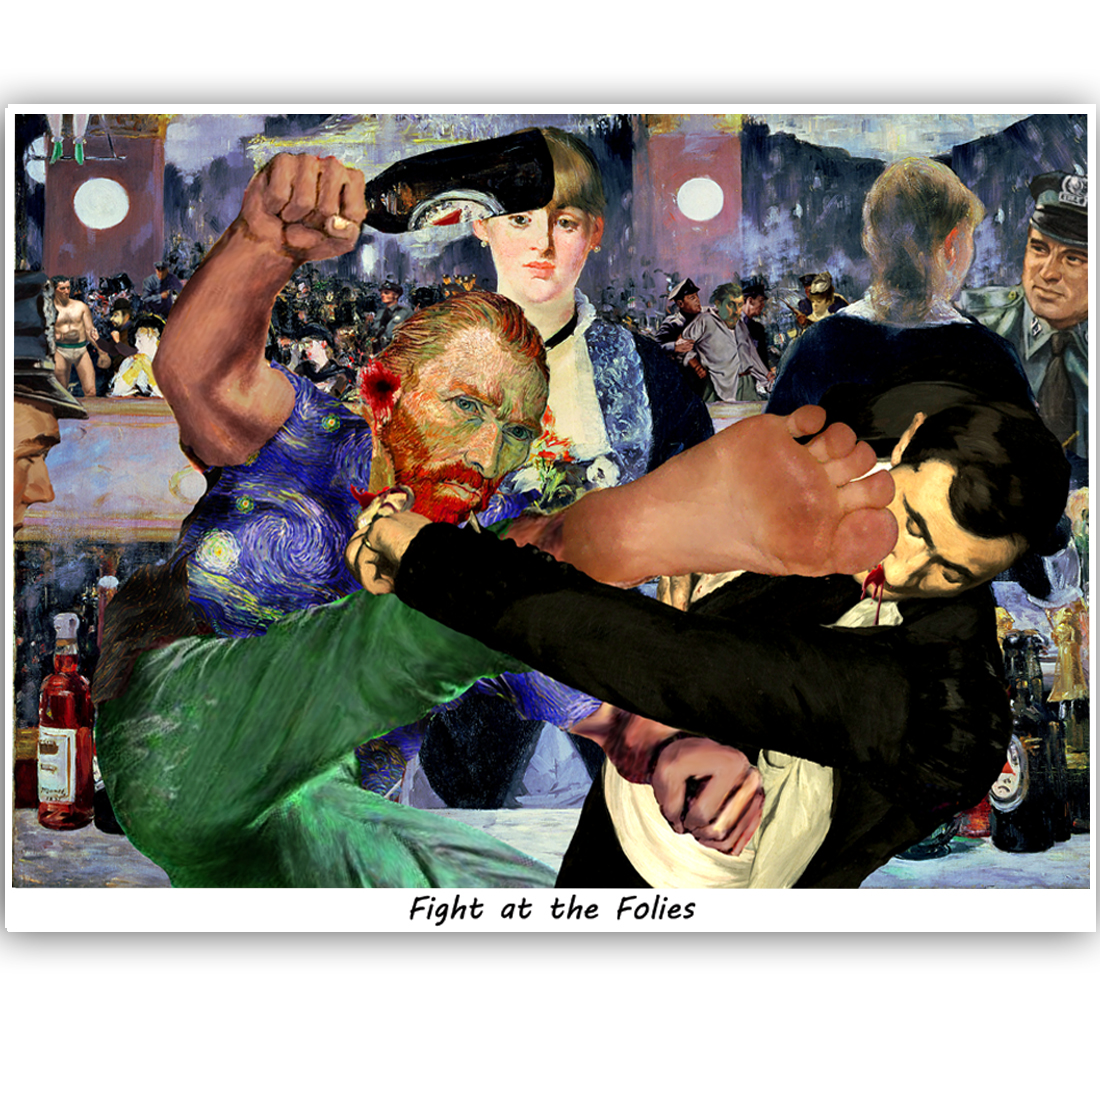 Fight at the Folies